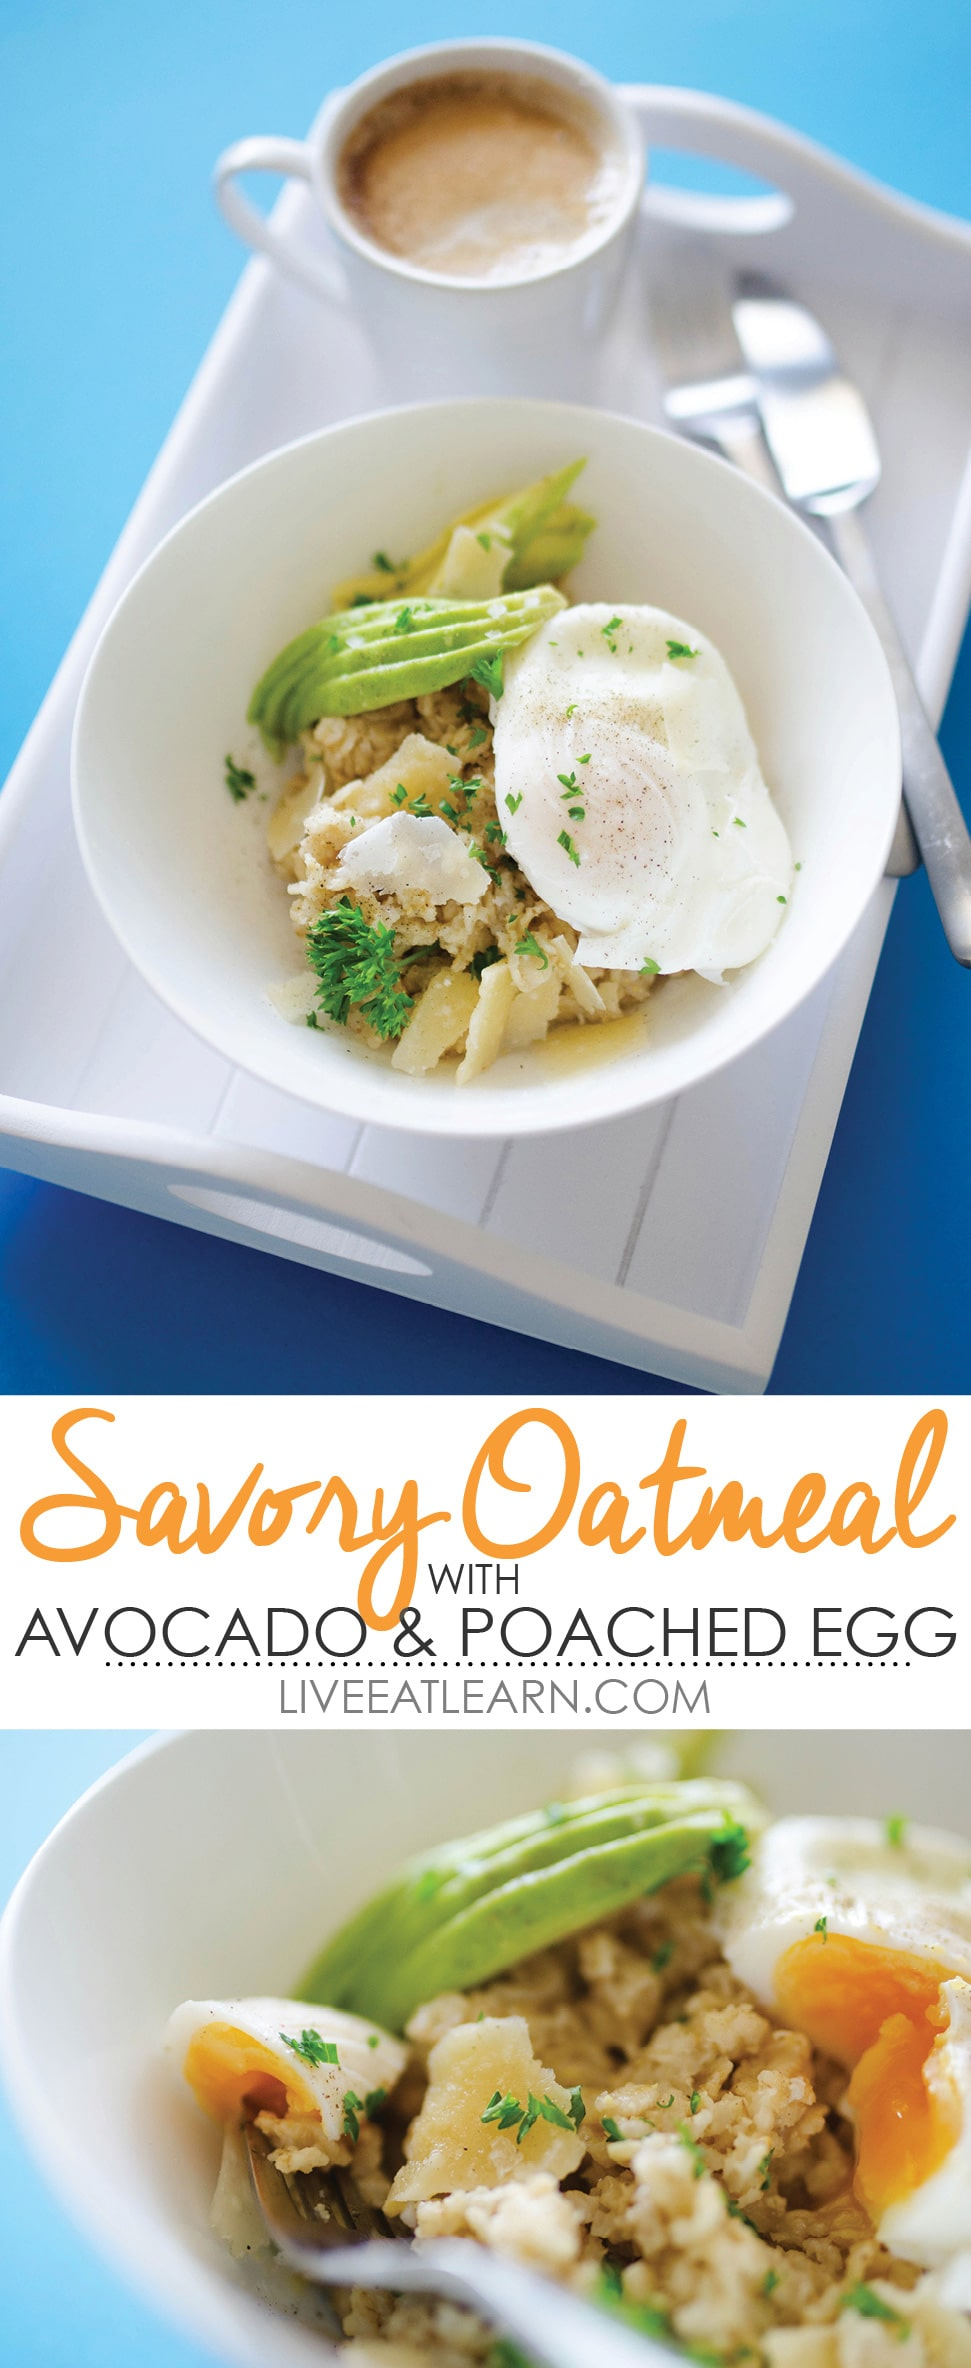 This Savory Oatmeal recipe is healthy, delicious, and so unique! With sliced avocado, parmesan cheese, and a poached egg, this is a vegetarian breakfast that will revolutionize your whole morning routine.